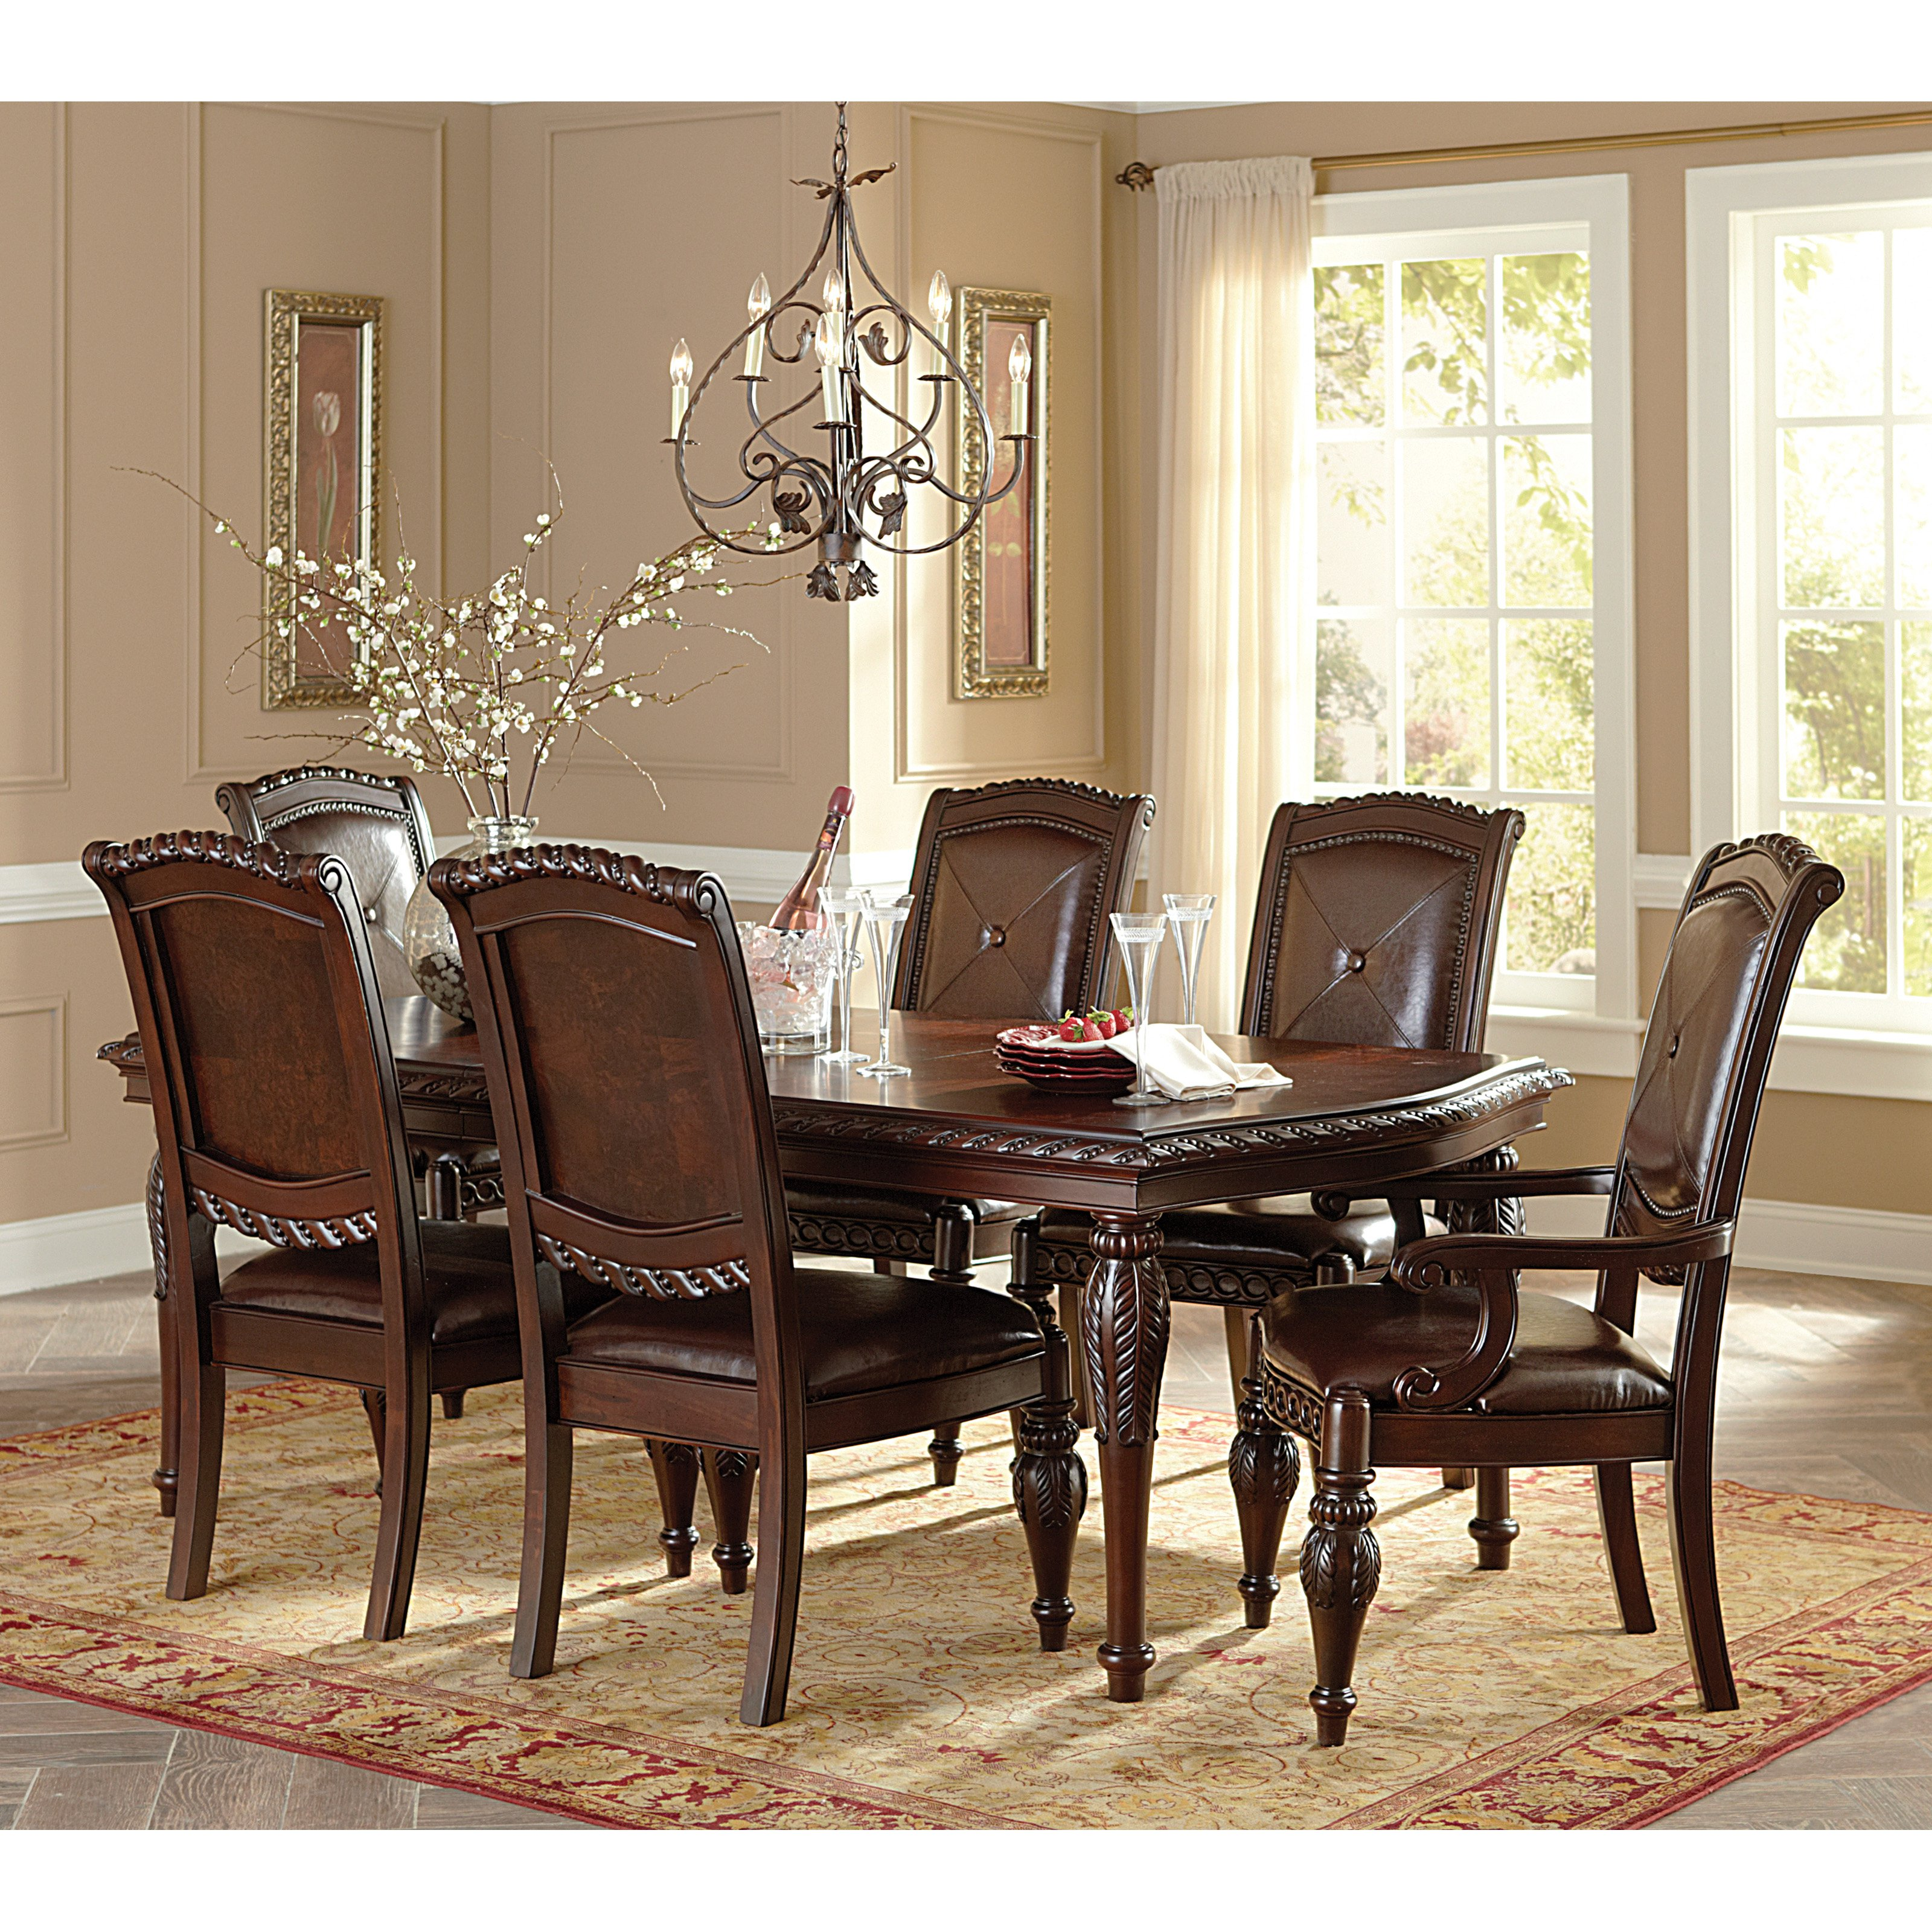 Steve Silver Antoinette 7 Piece Dining Table Set   Cherry   Walmart.com